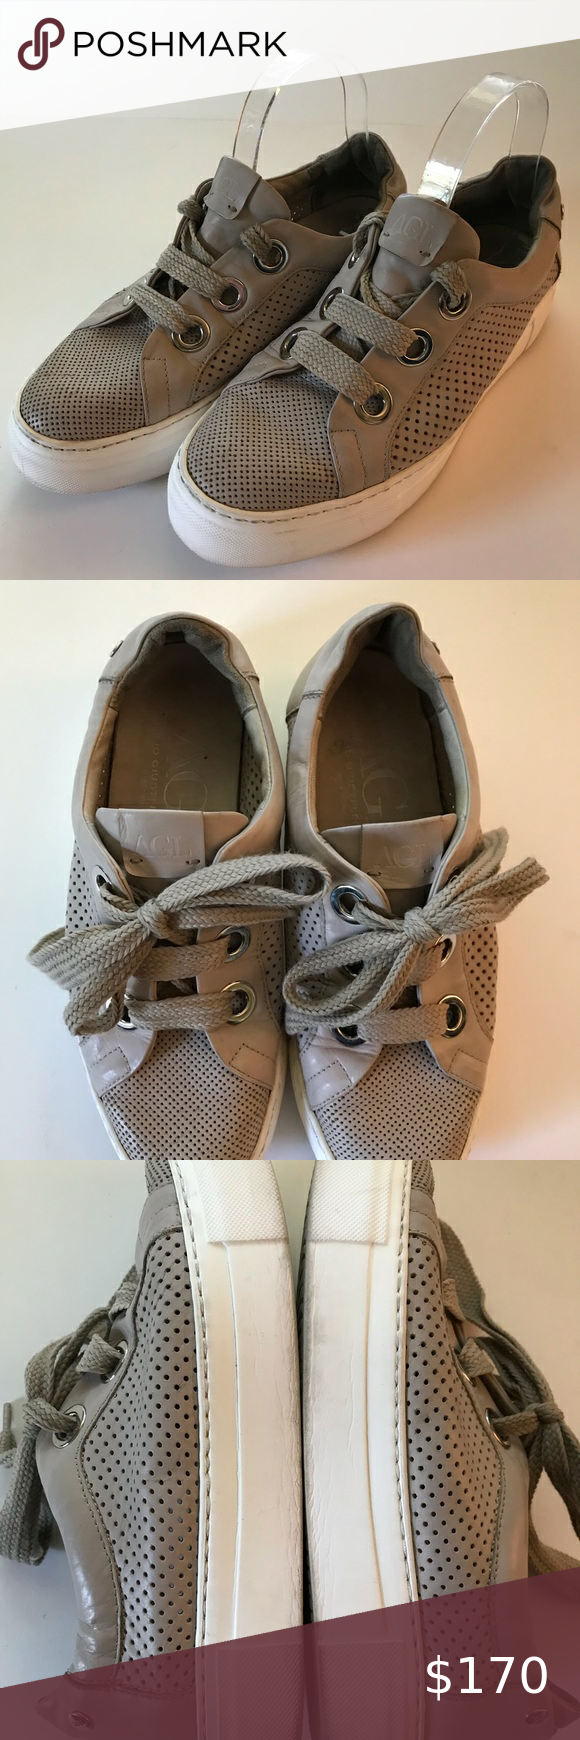 AGL Perforated platform sneaker size 8